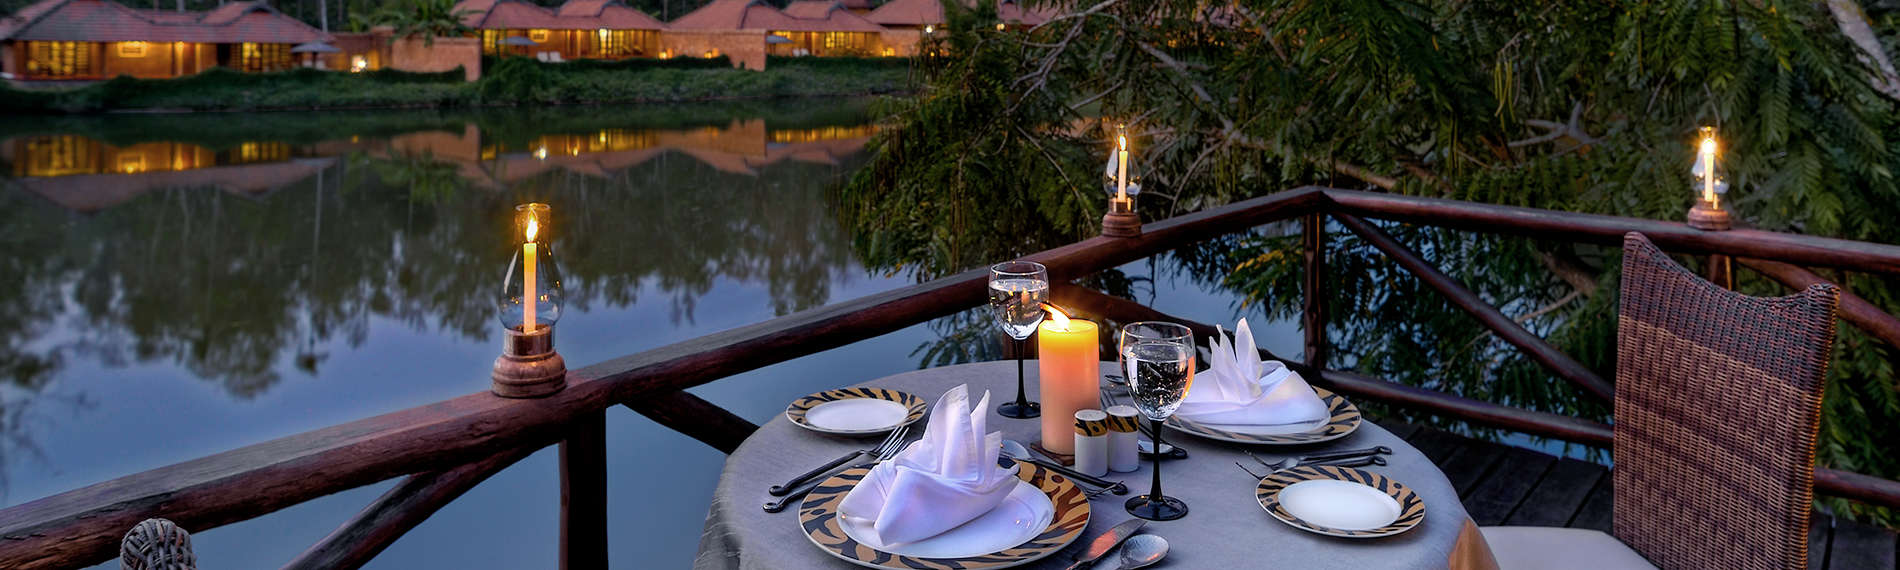 Dining in coorg, Orange County Resorts